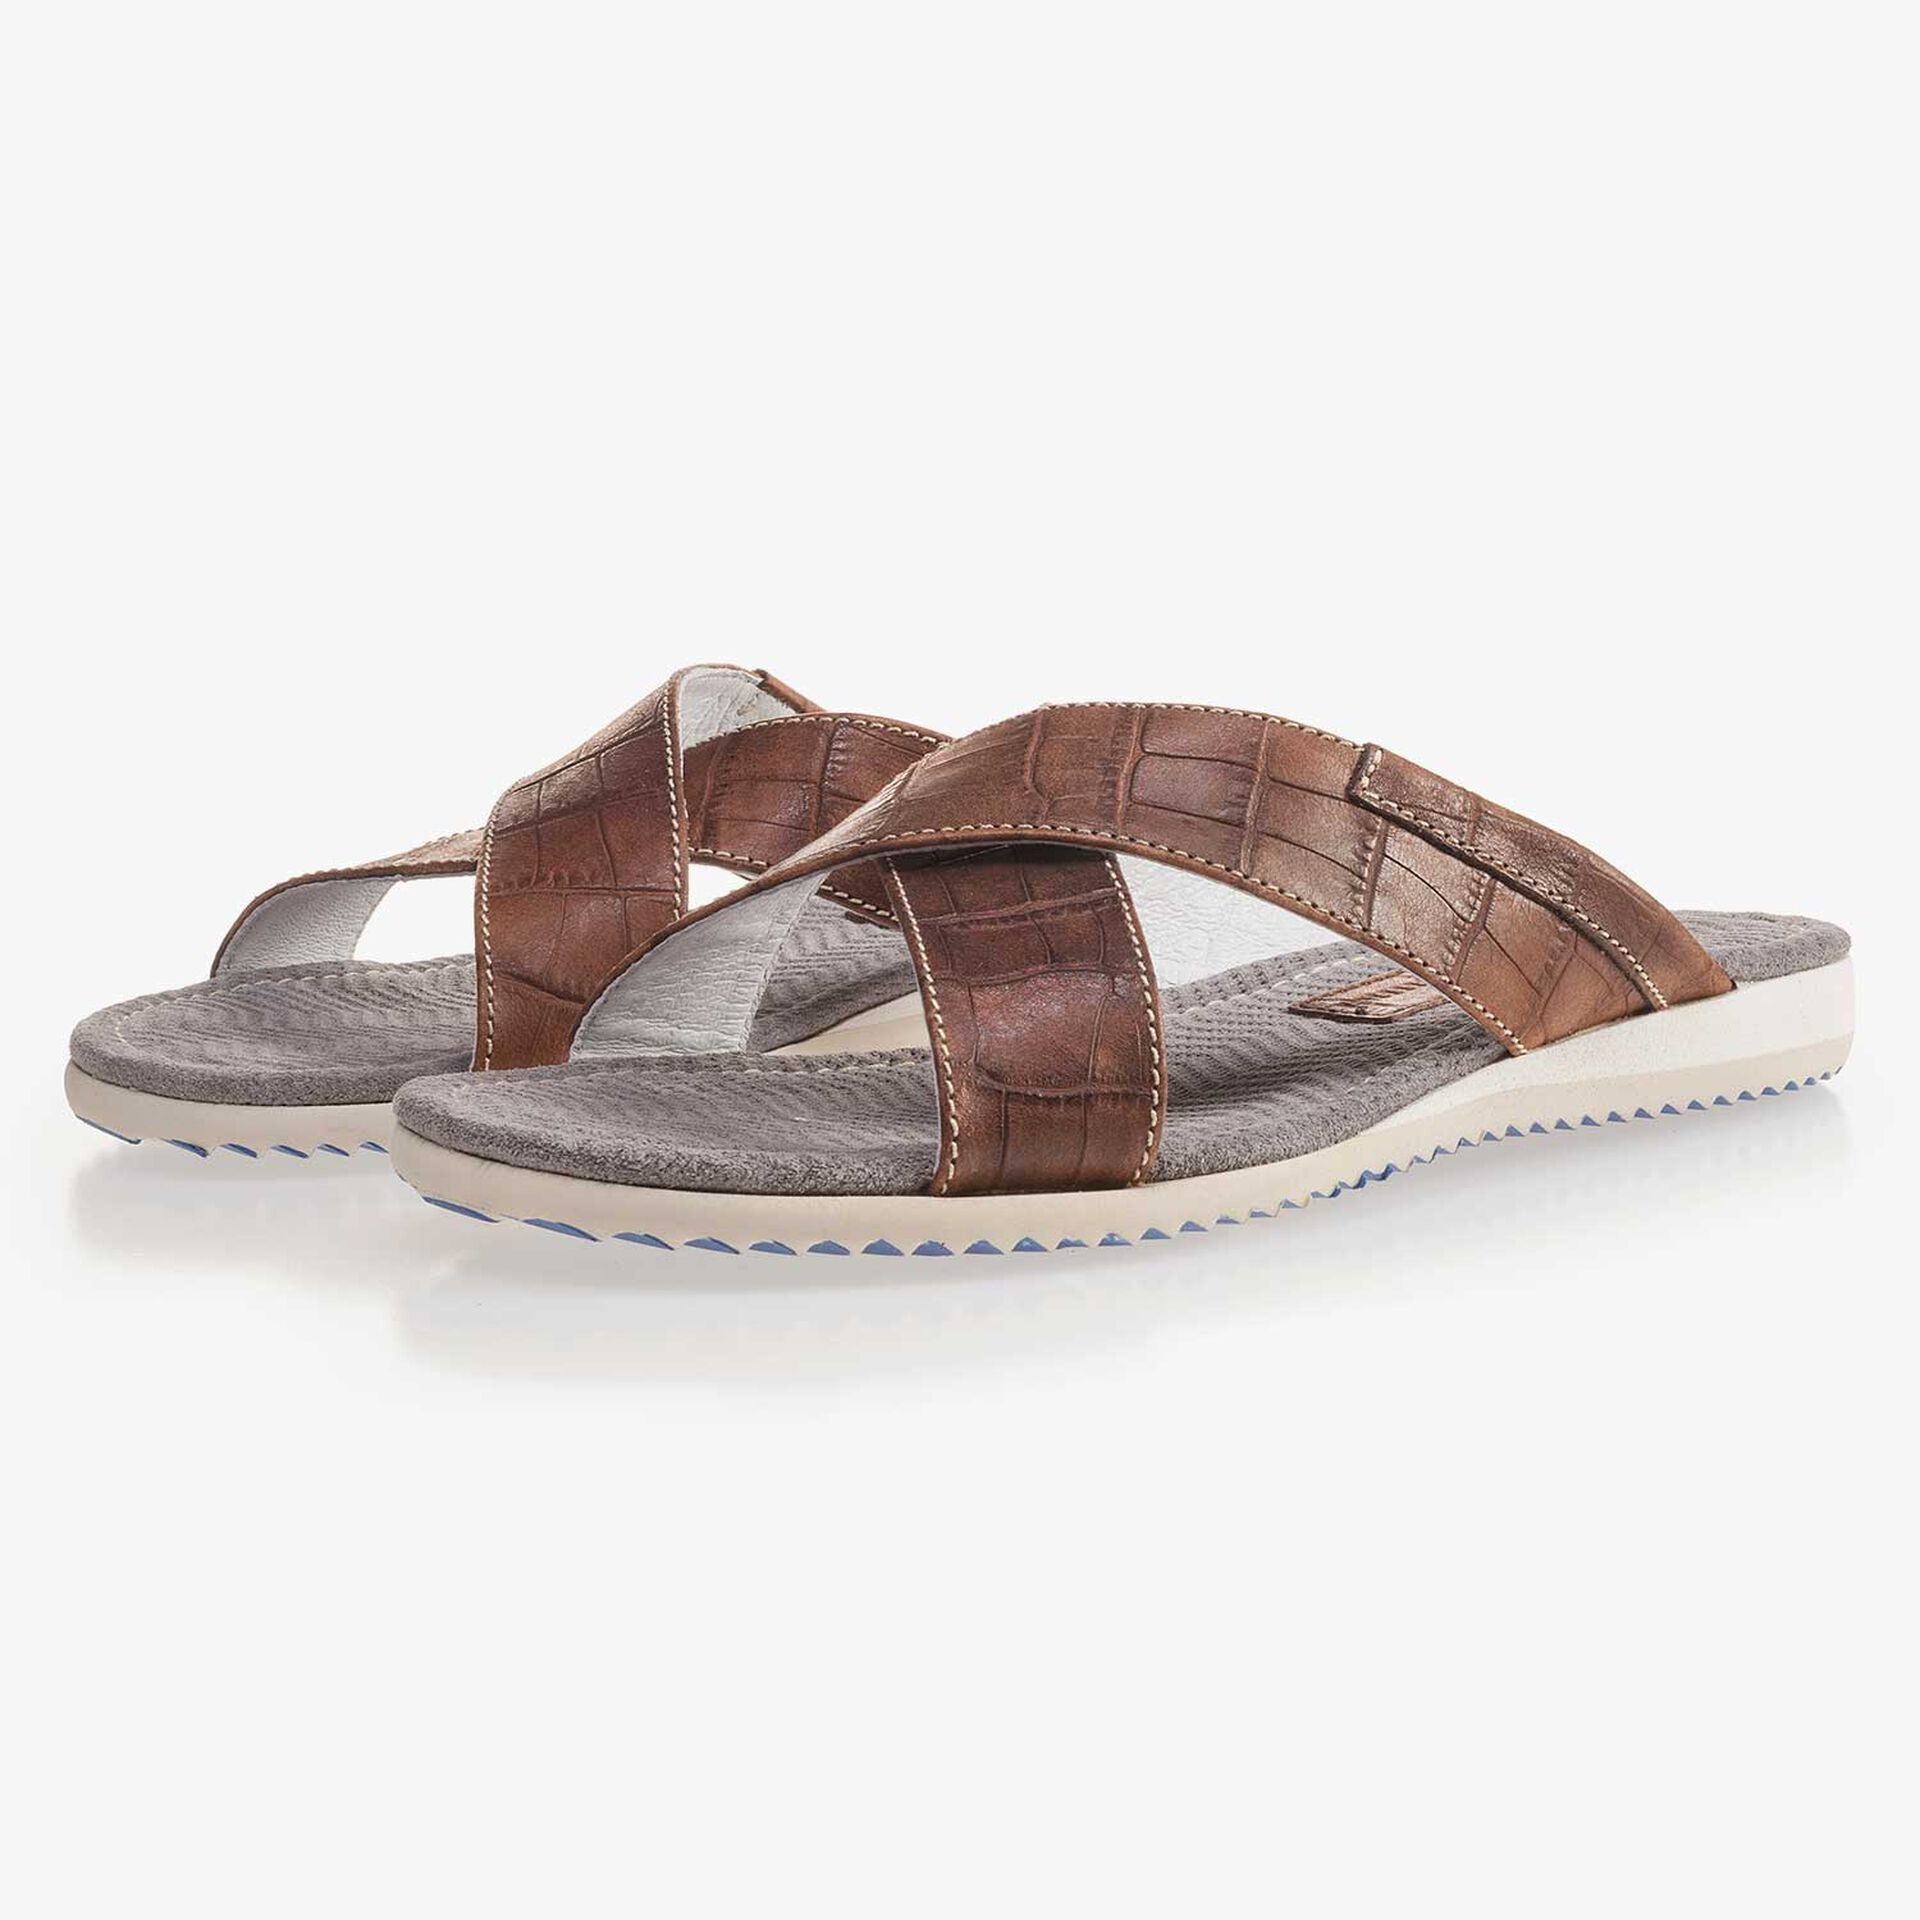 Cognac-coloured leather slipper with cross straps and croco print